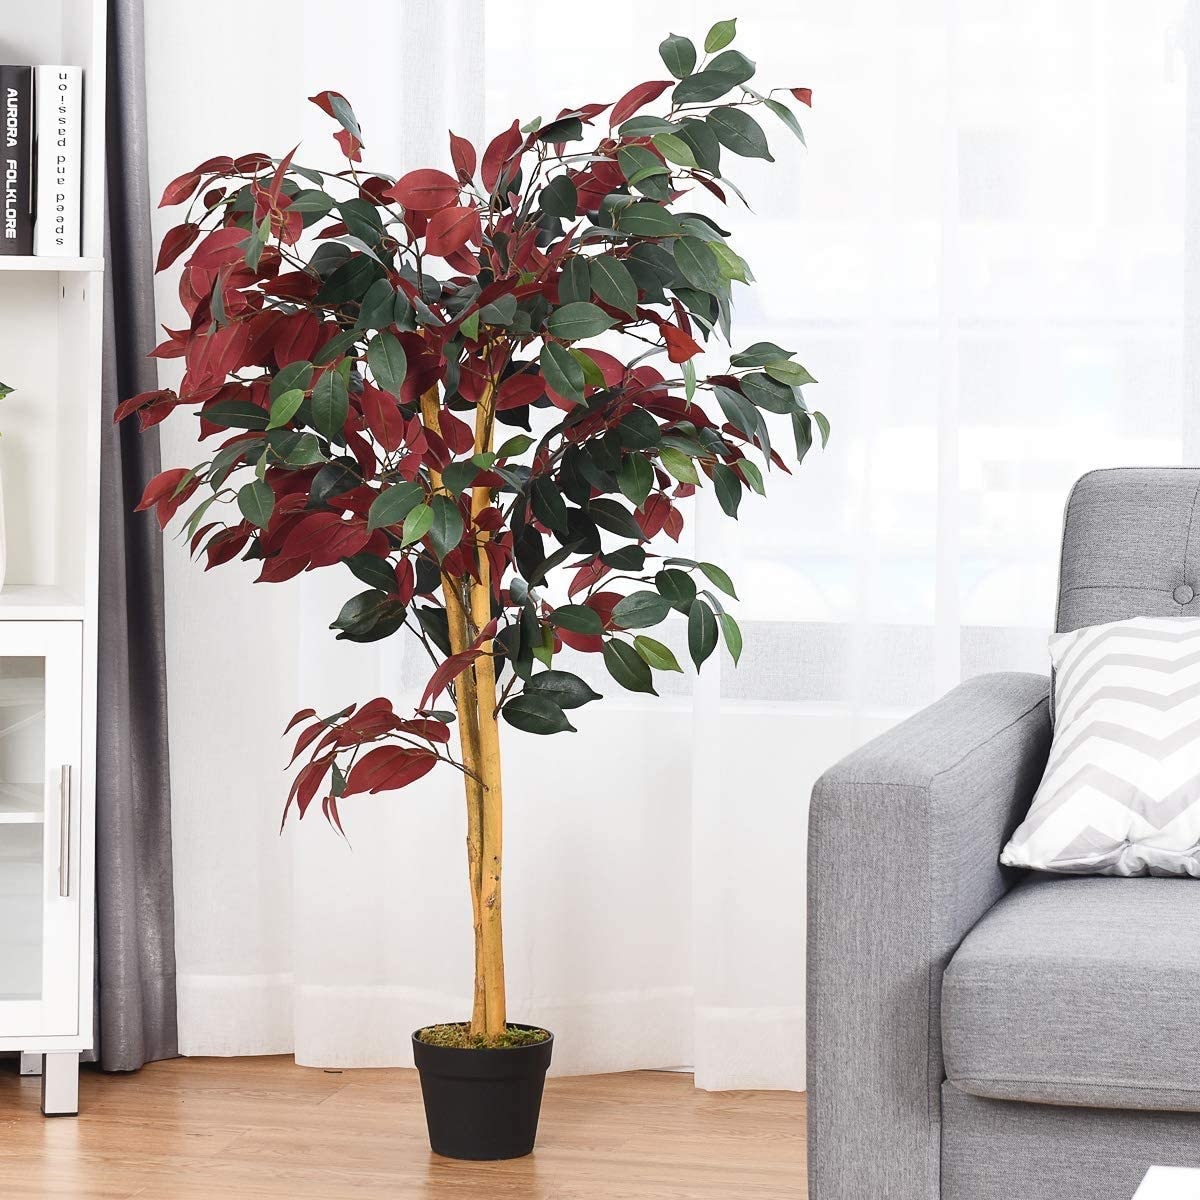 FANTASK 4 ft Tall Portland Mall Green Fake Tree Pot Price reduction Ficus in Artifici Nursery